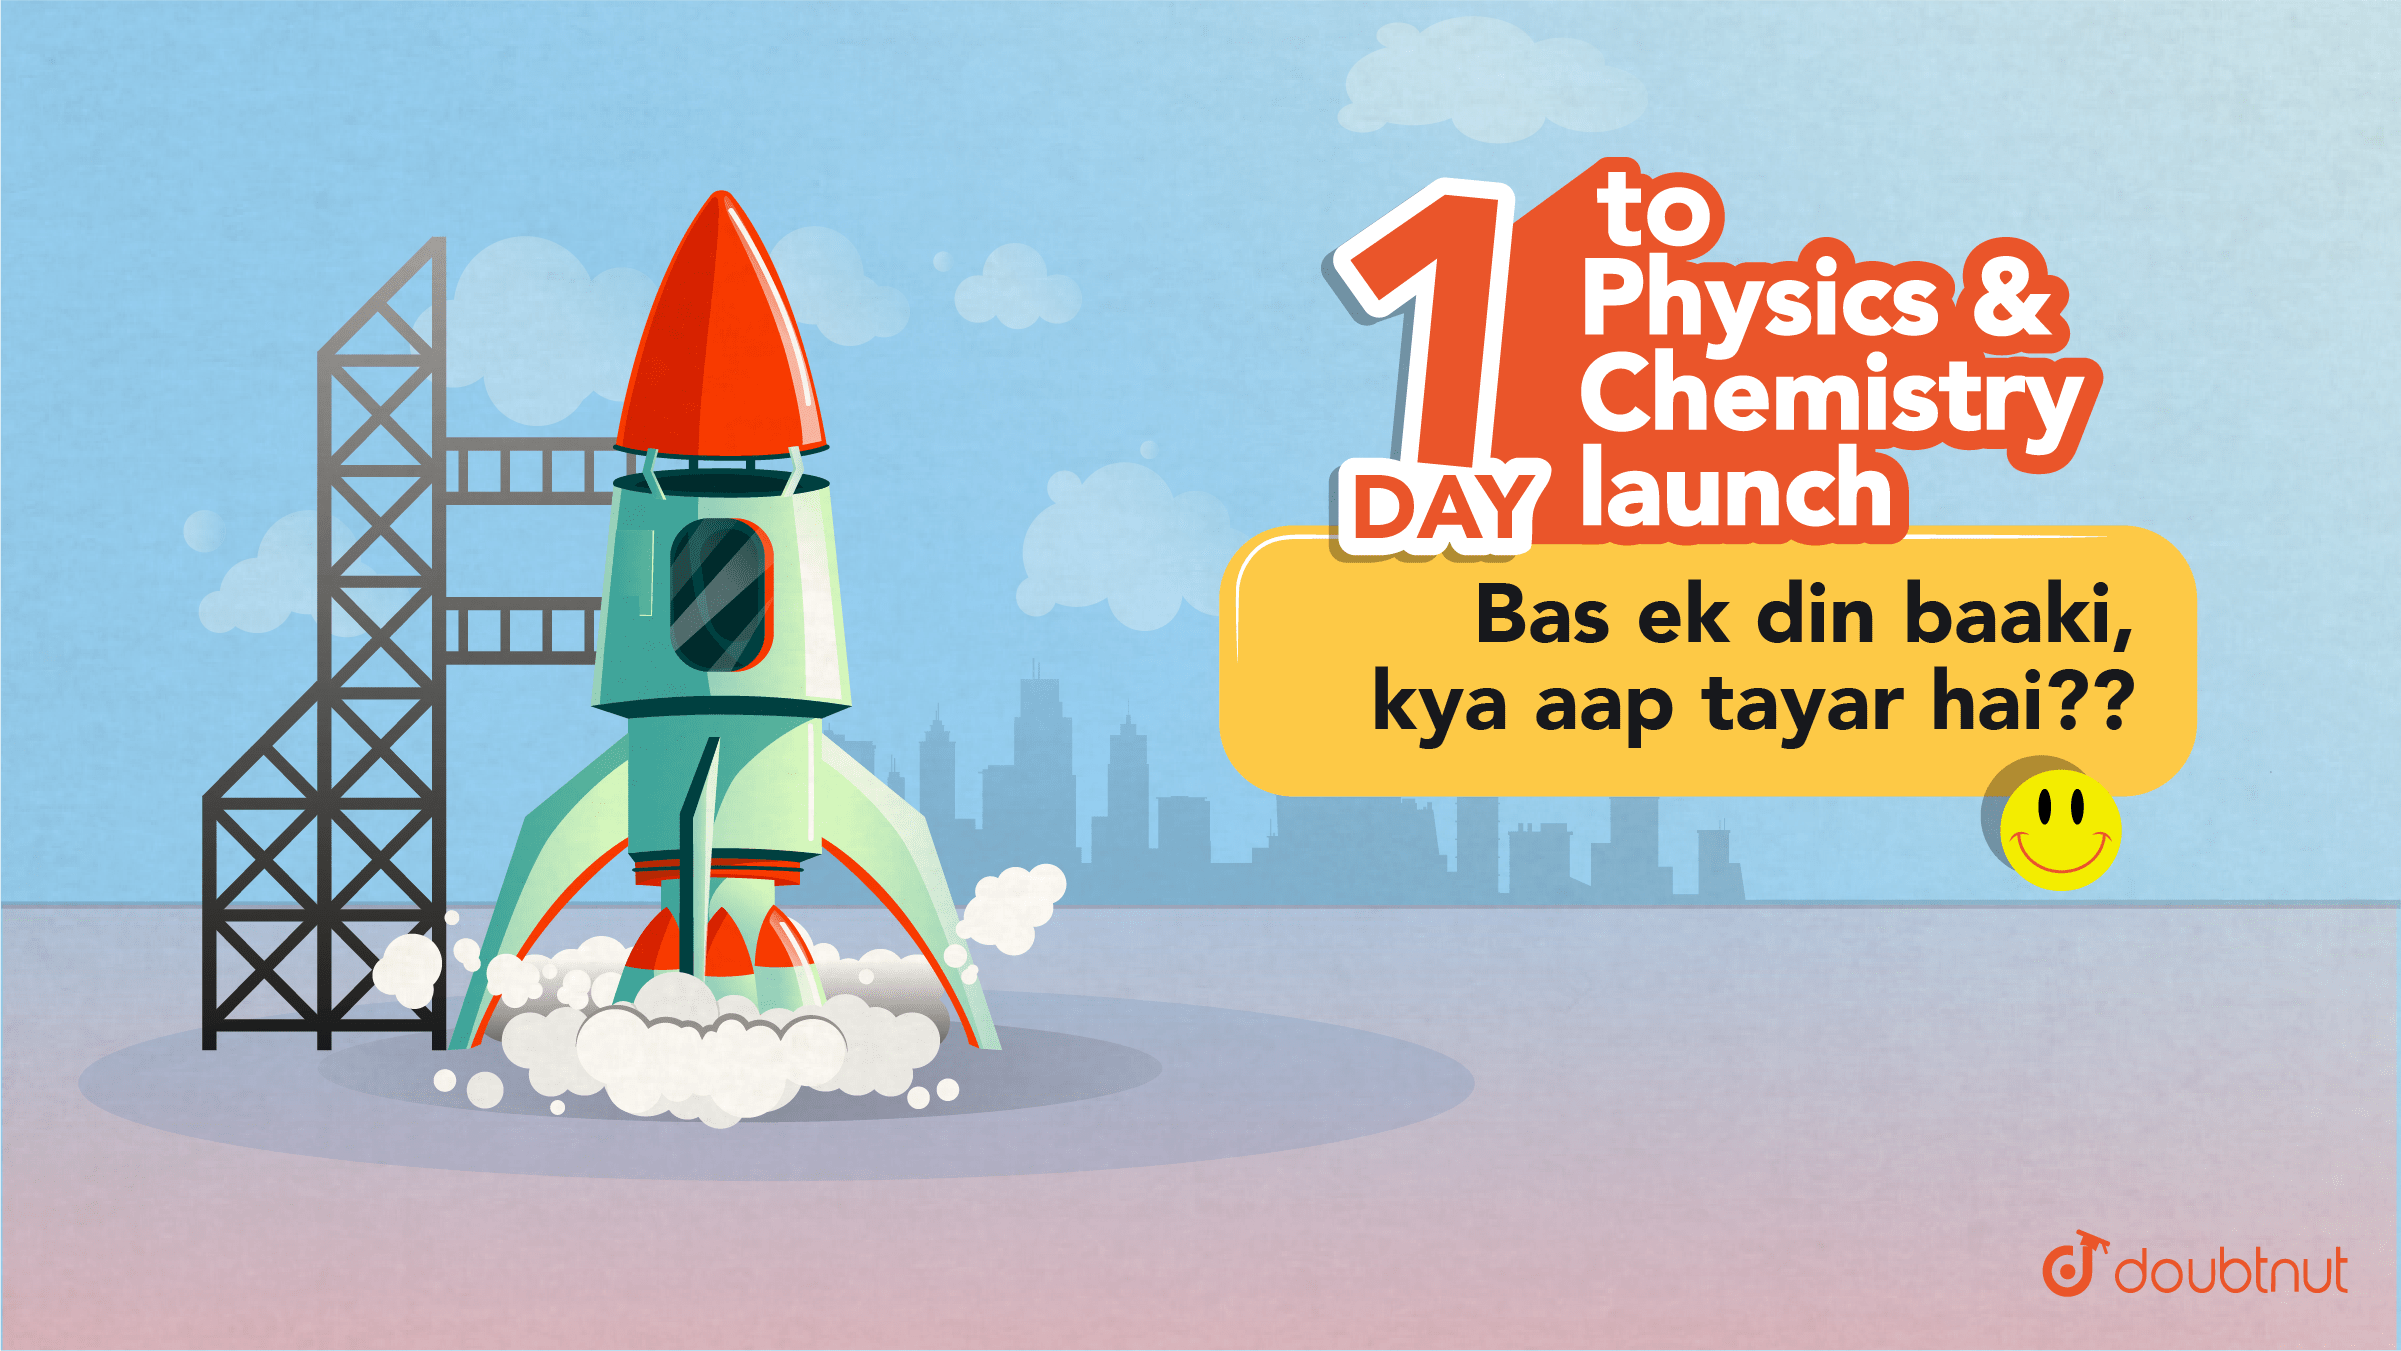 1 Day to Physics & Chemistry